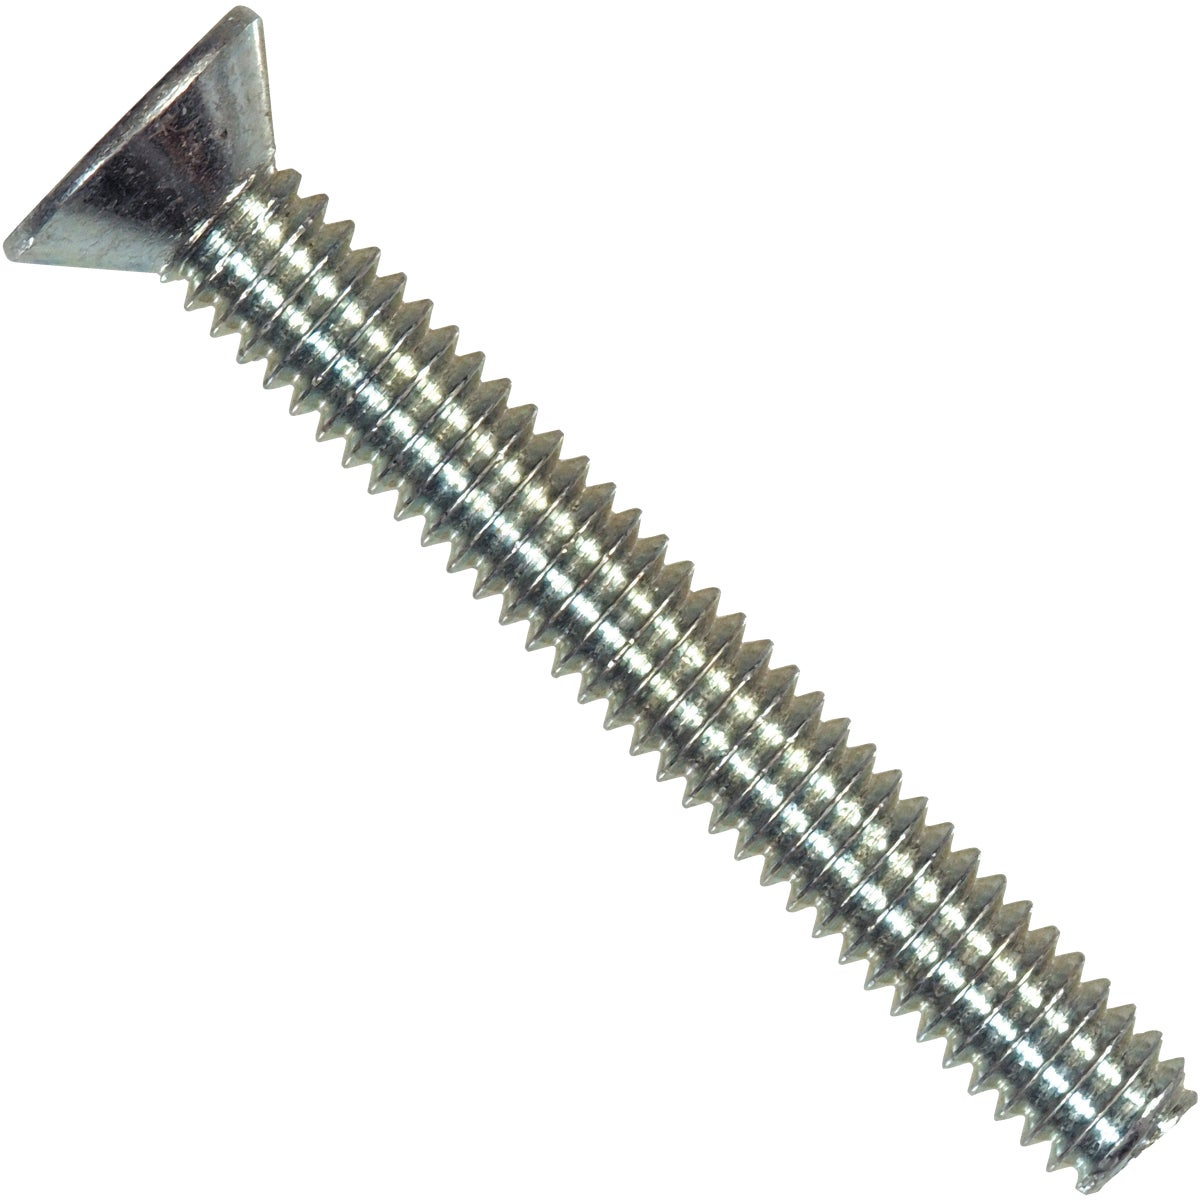 10-24X1 PH FH MACH SCREW - 101079 by Hillman Fastener